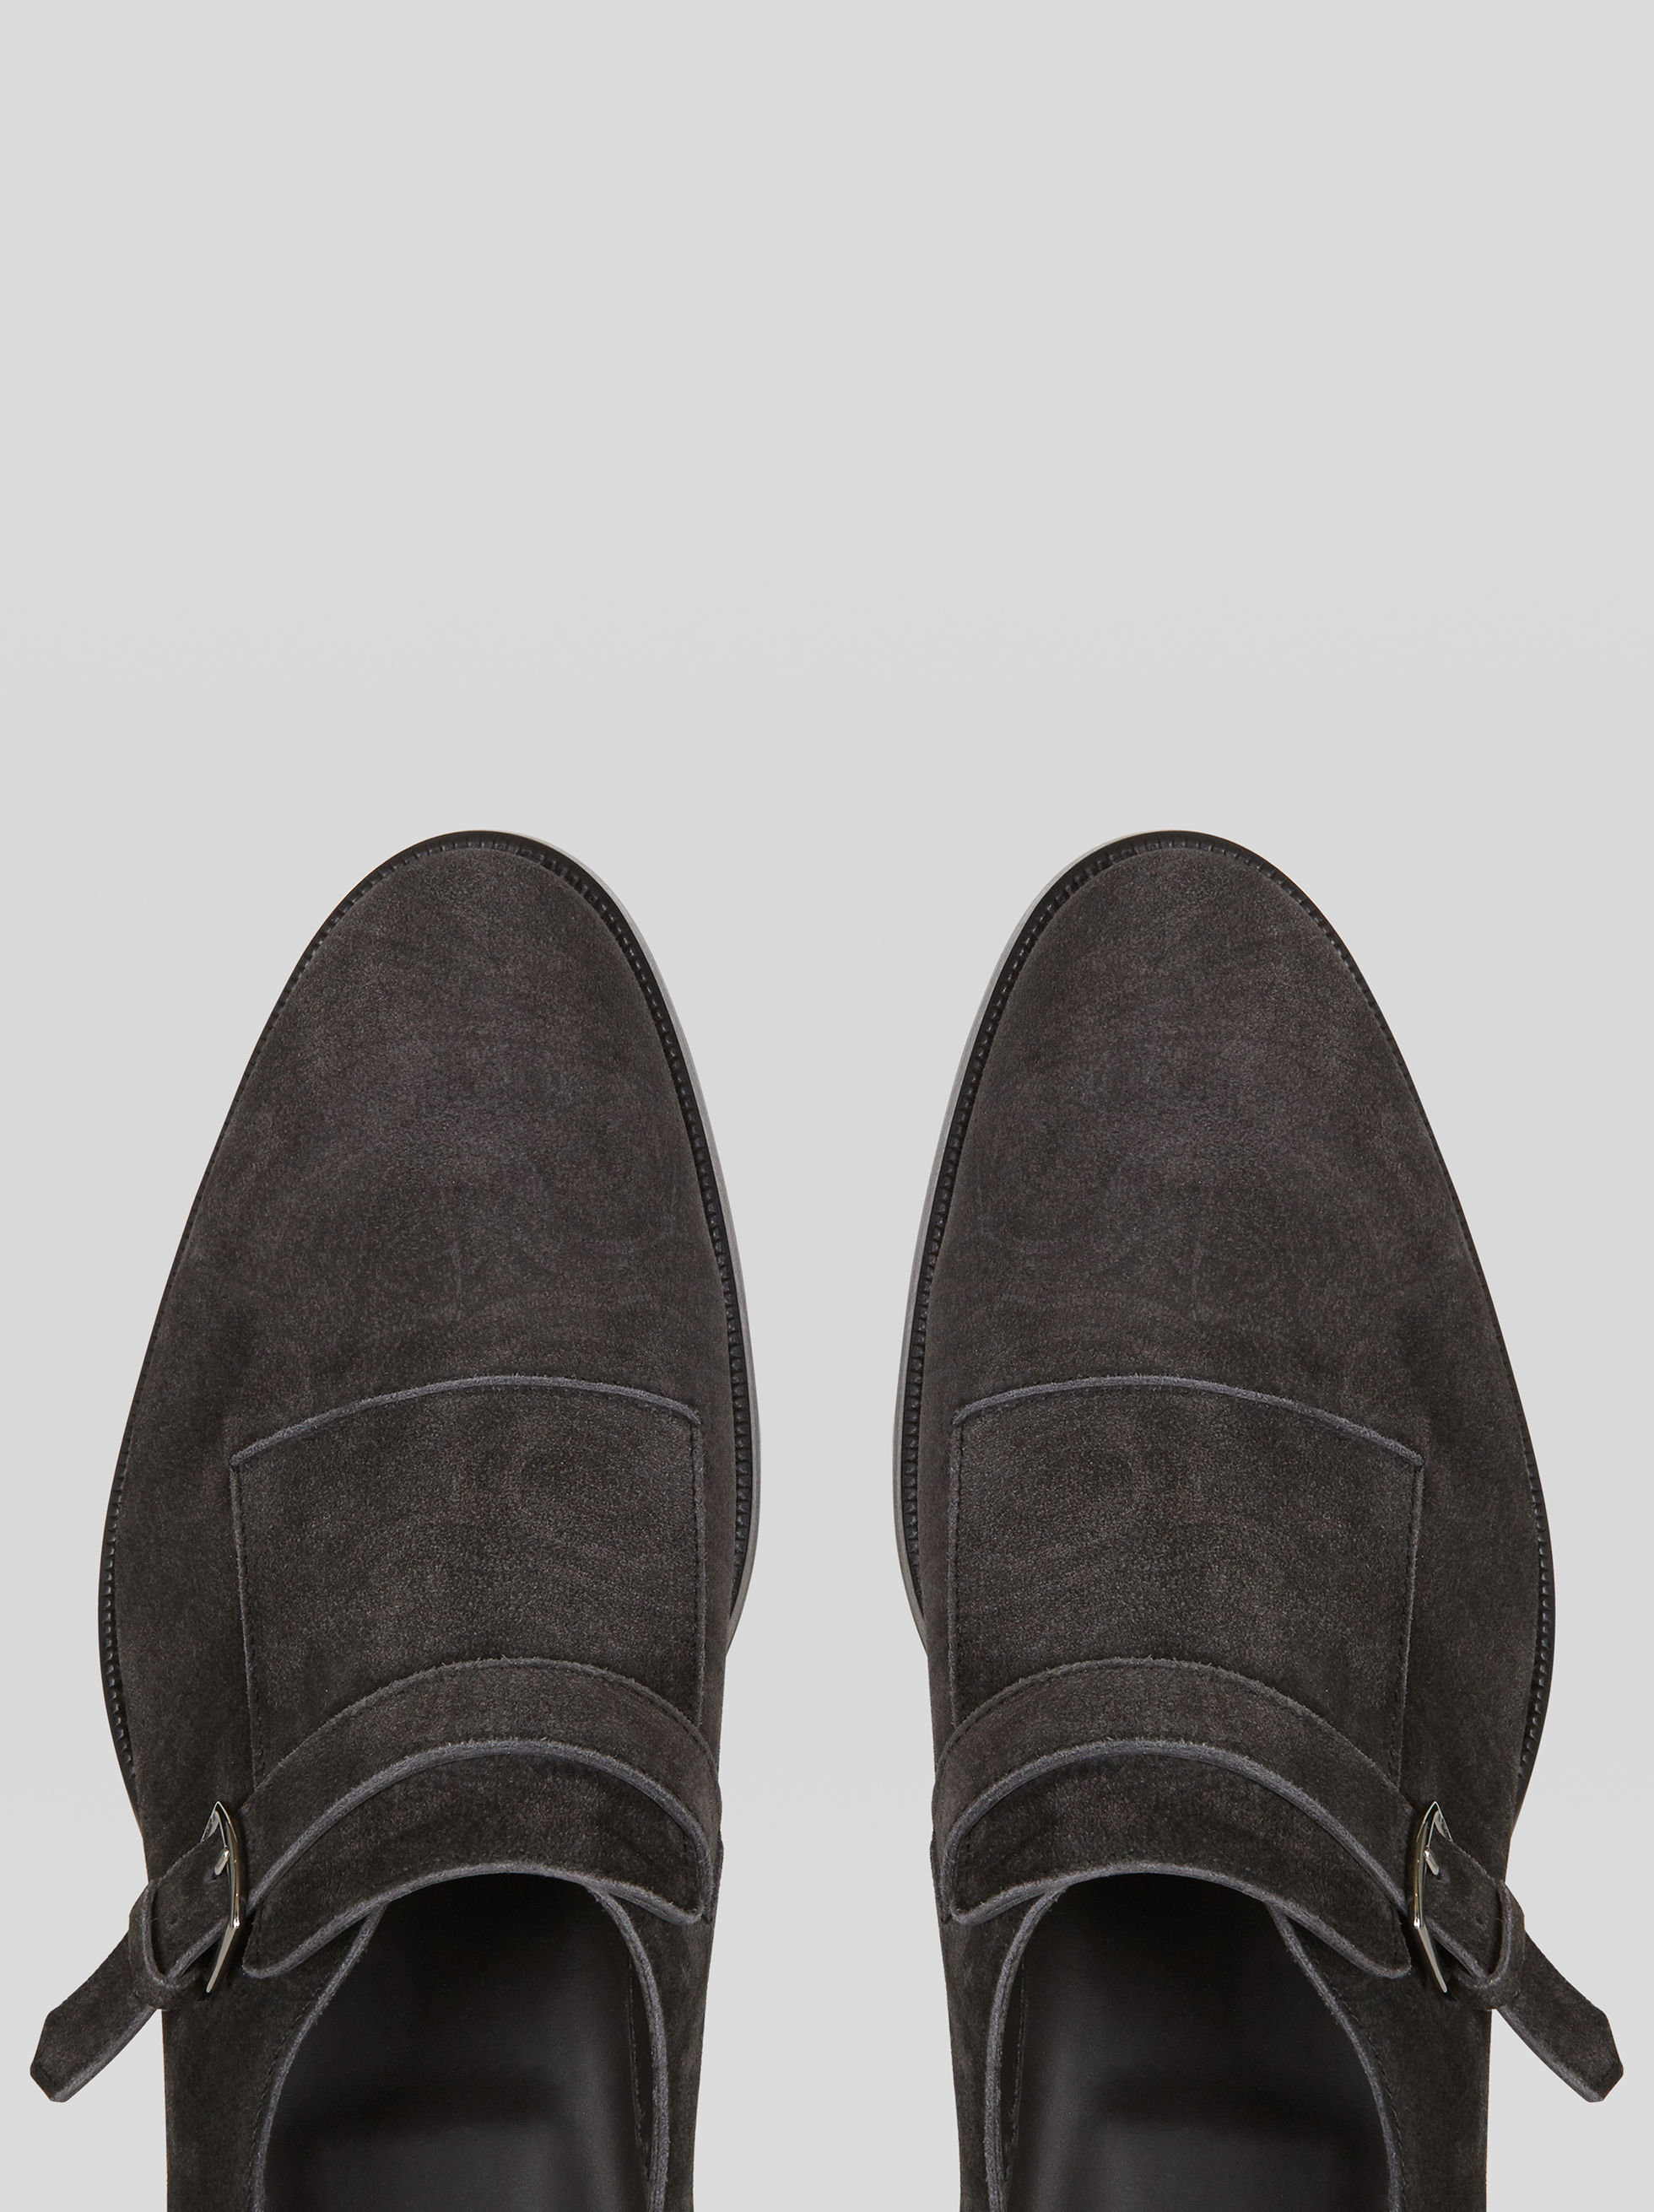 SUEDE MONK STRAPS WITH PAISLEY PRINT